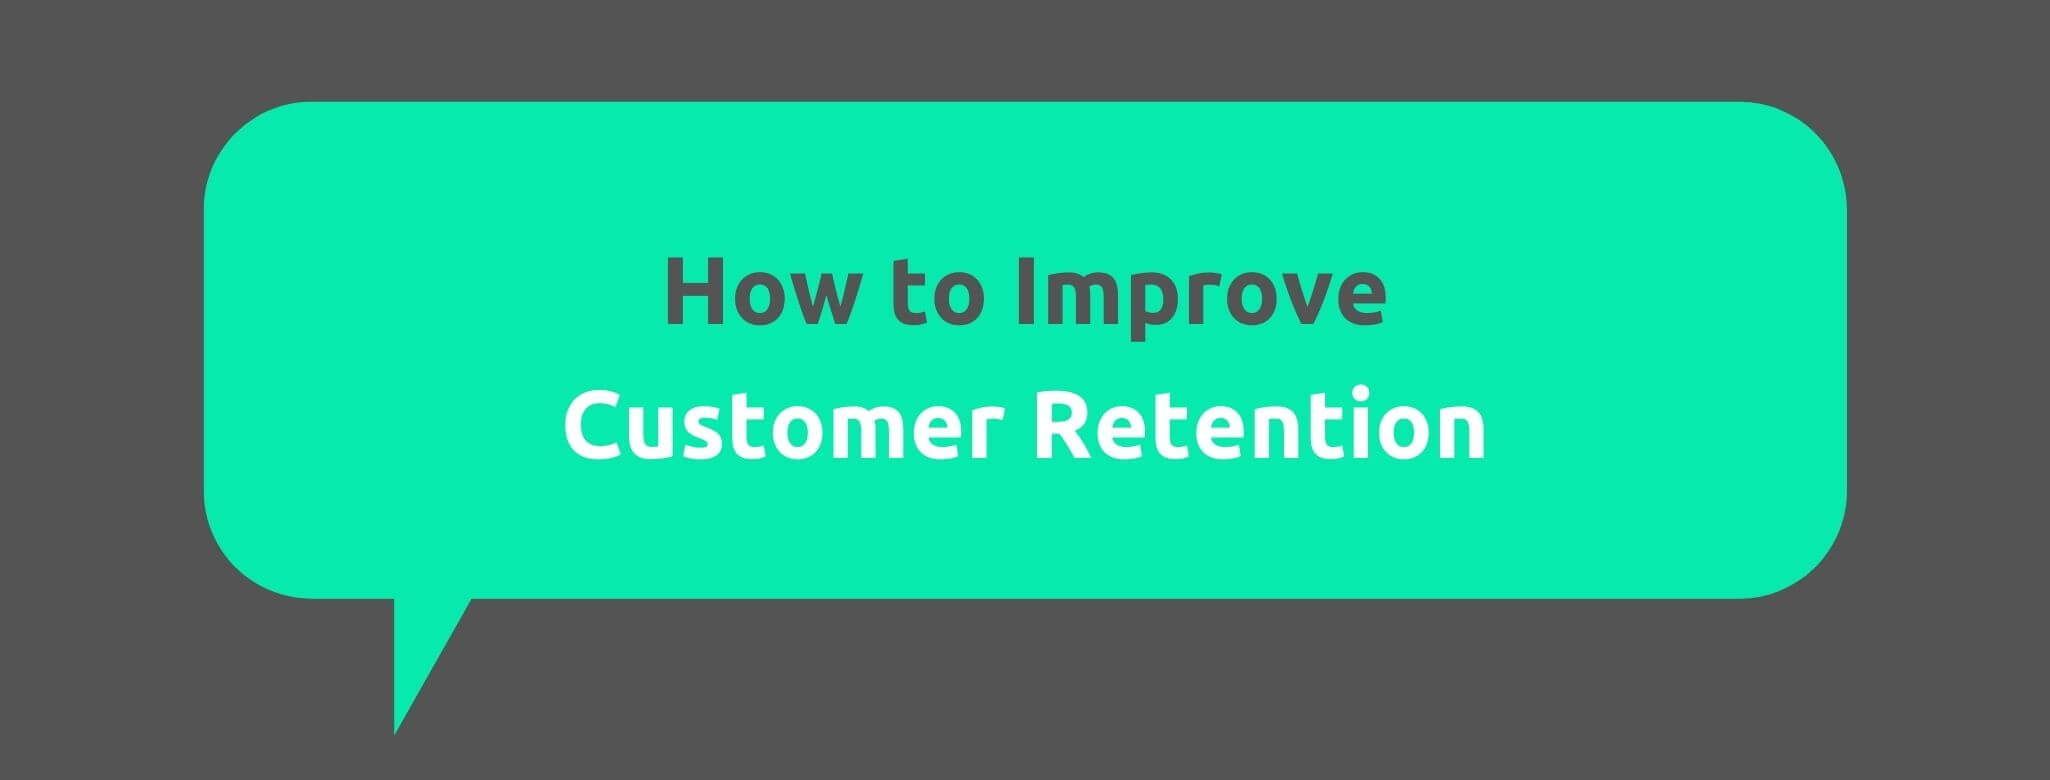 How to Improve Customer Retention - Customer Acquisition vs. Customer Retention - Replyco Helpdesk Software for eCommerce